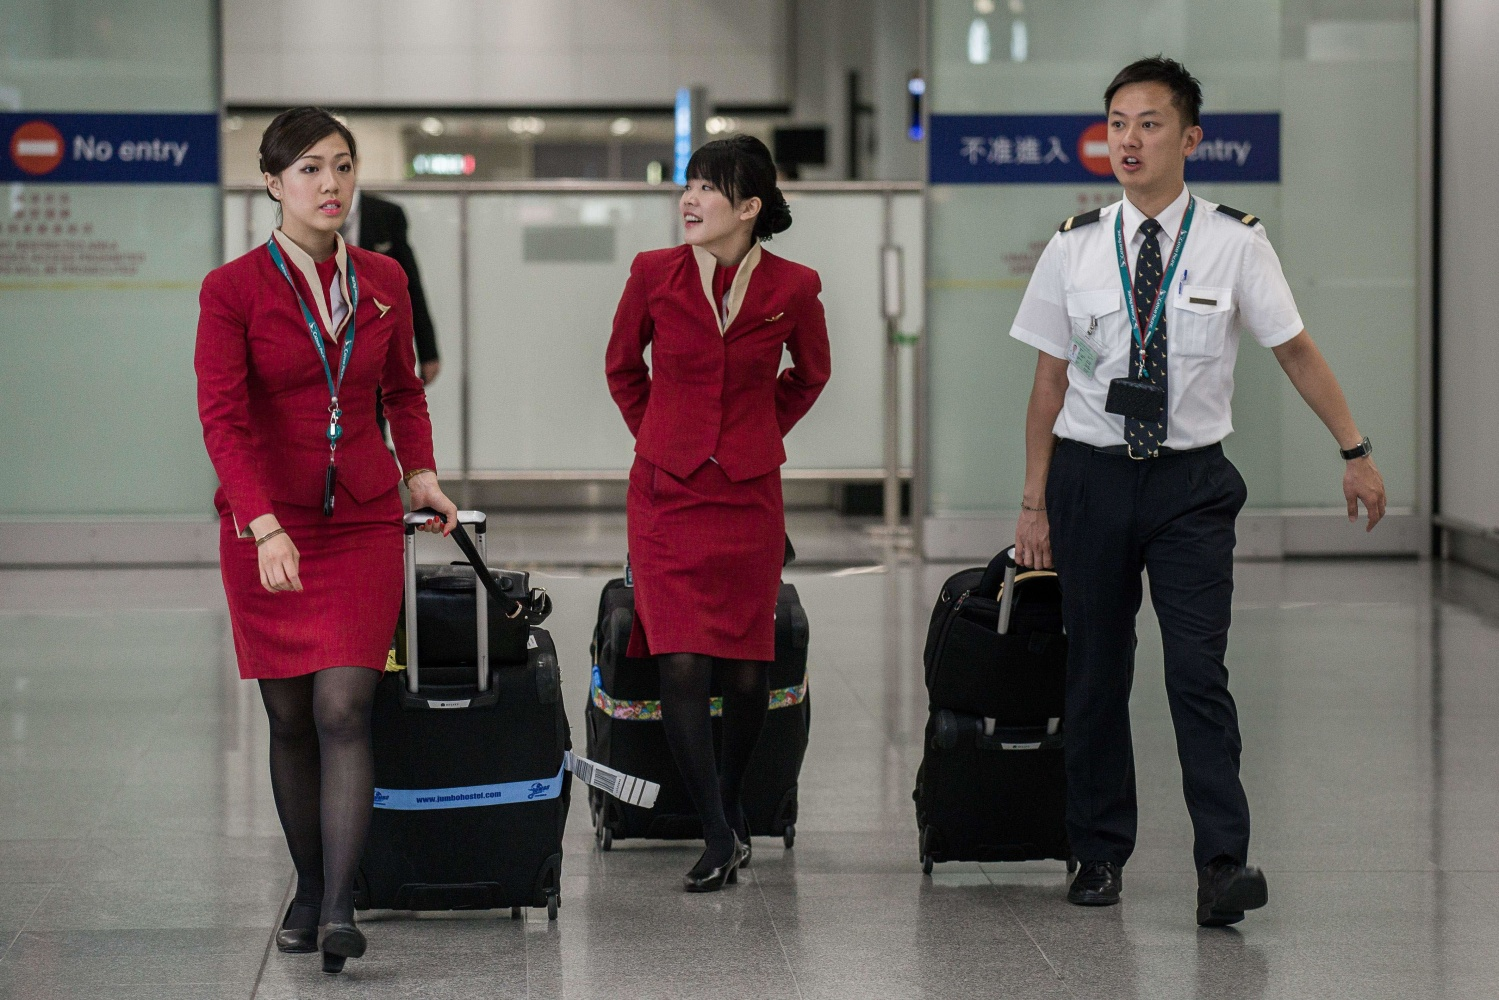 cathay pacific uniforms are too sexy says flight attendants image hong kong airline company cathay social flight attendants